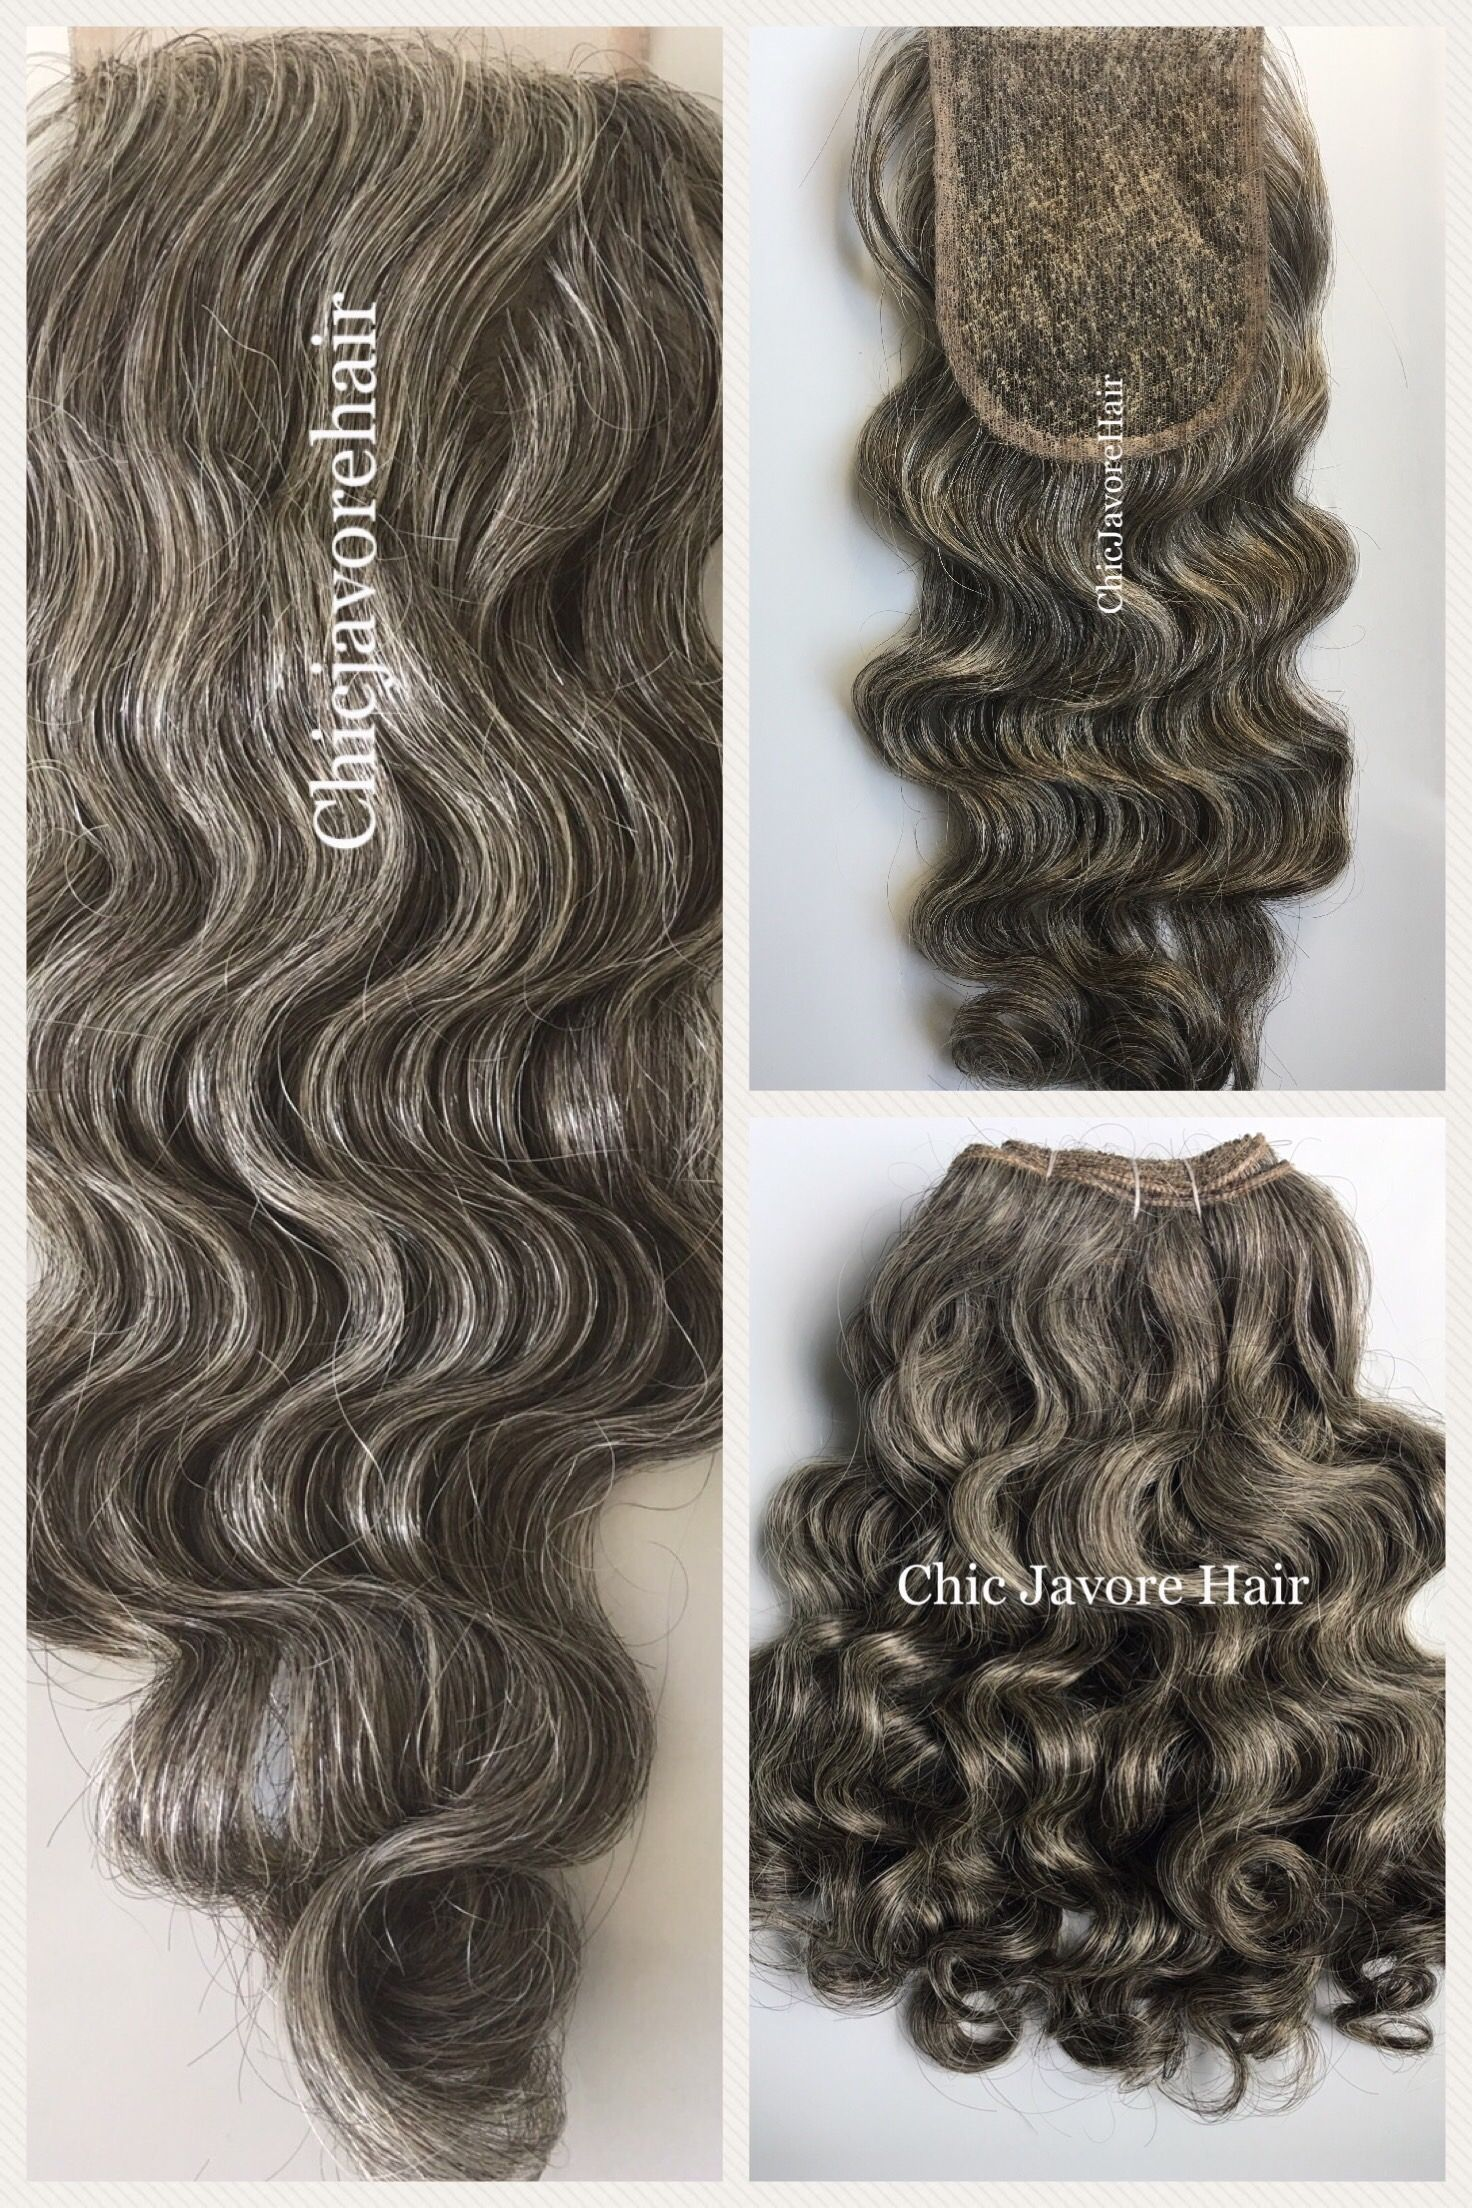 authentic virgin indian natural curly light grey hair from chic